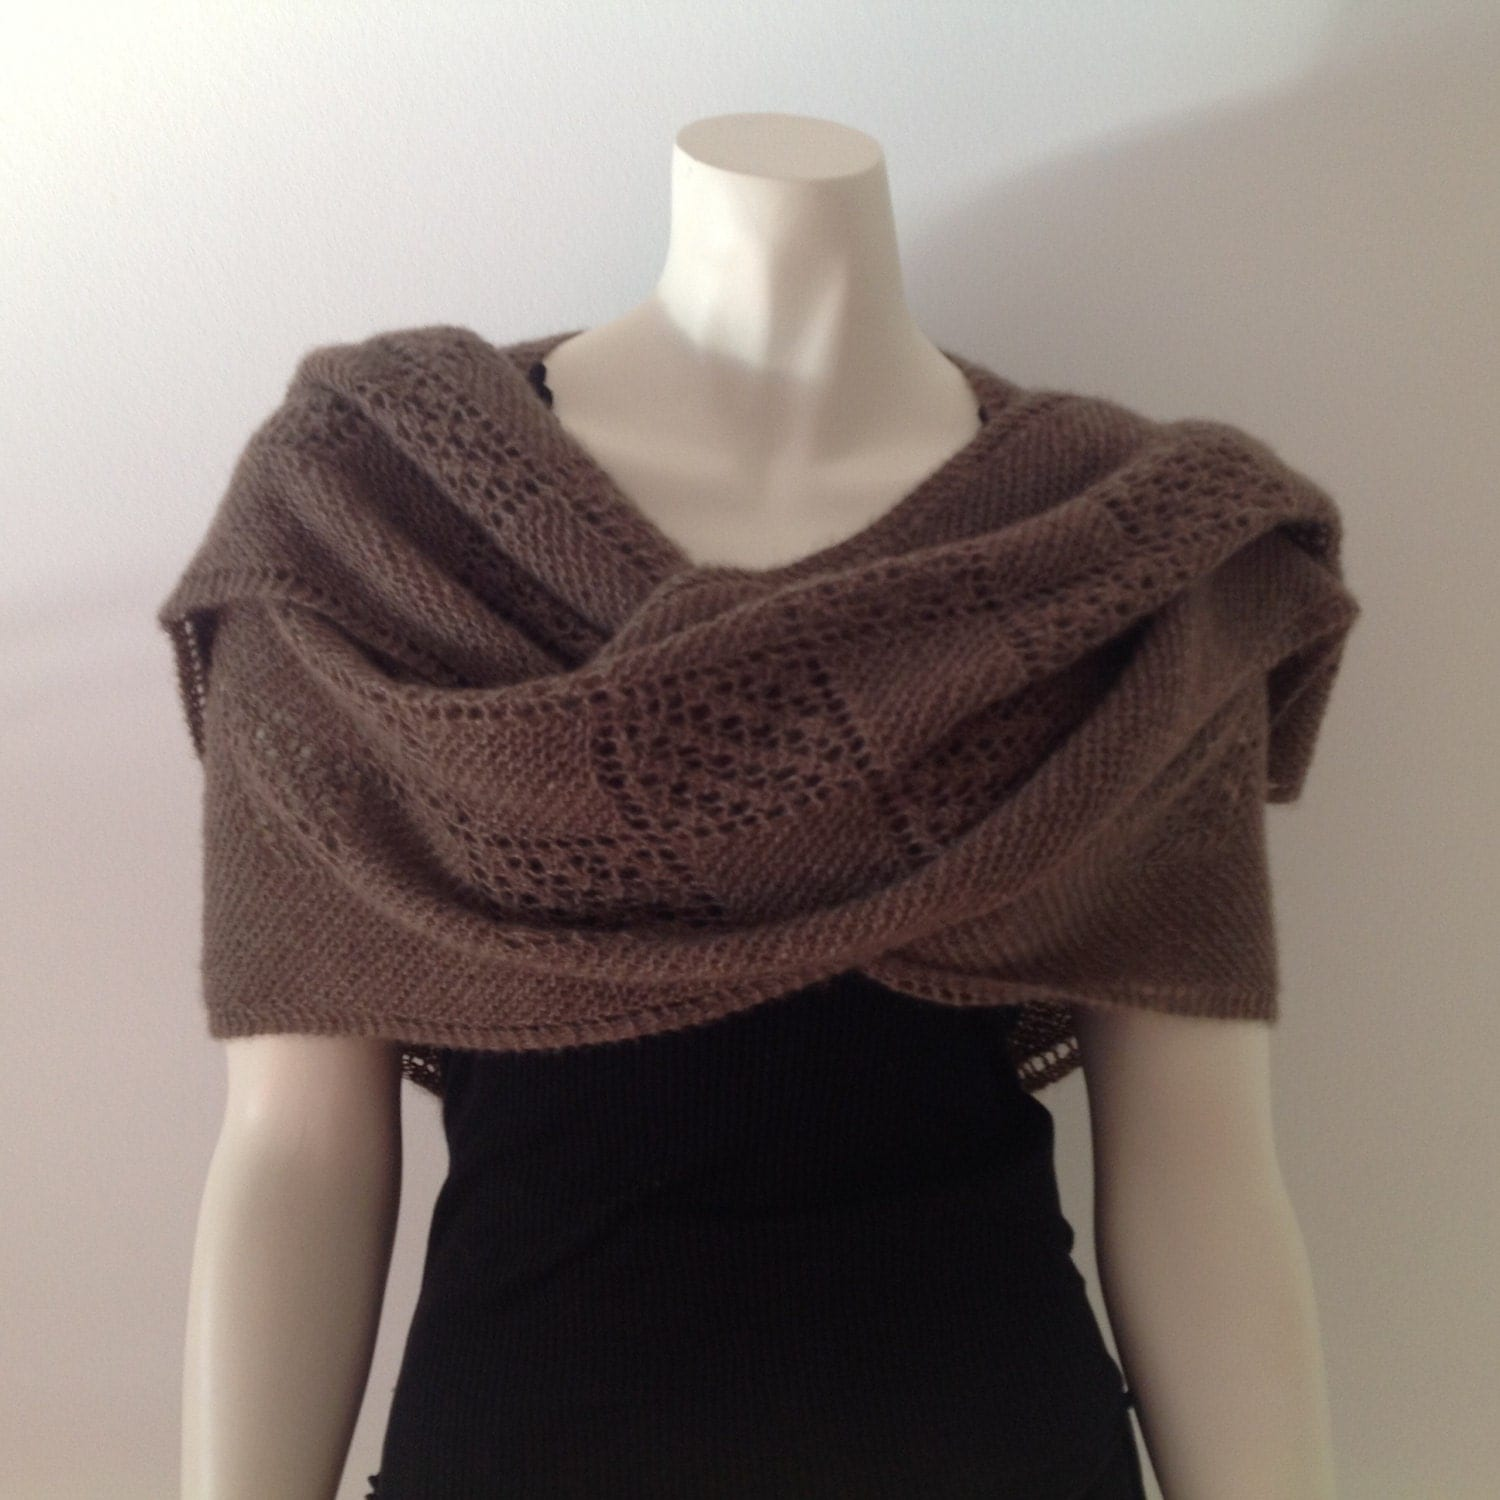 Qiviut Knitting Patterns : QIVIUT shawl hand knitted in lace pattern